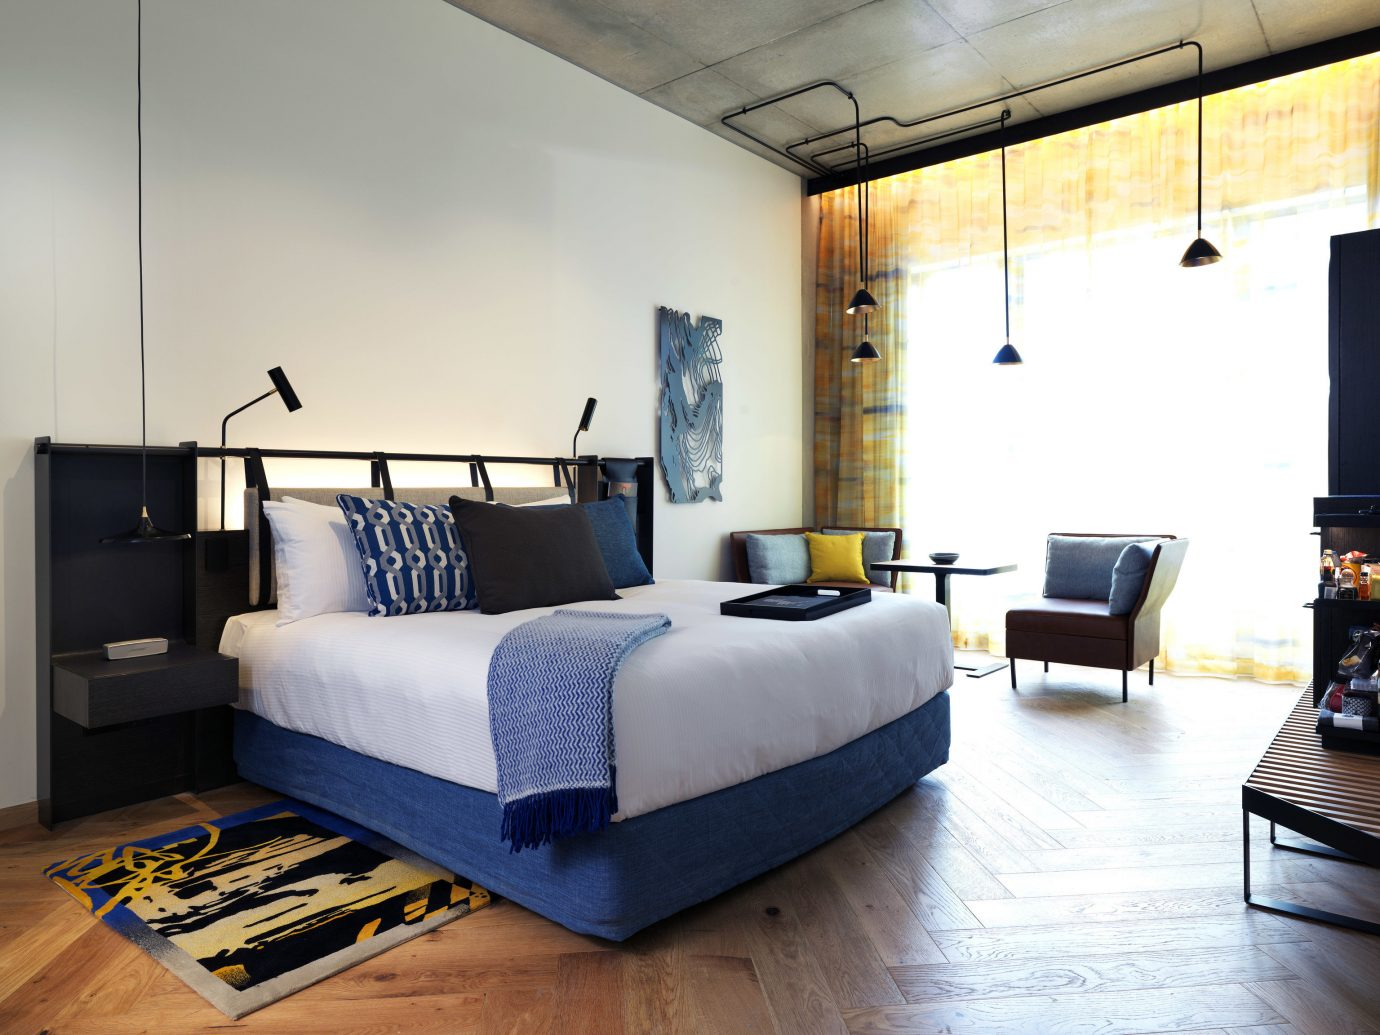 Hotels Romance indoor wall floor room property living room Living interior design Bedroom furniture home real estate bed Design loft bed frame condominium apartment